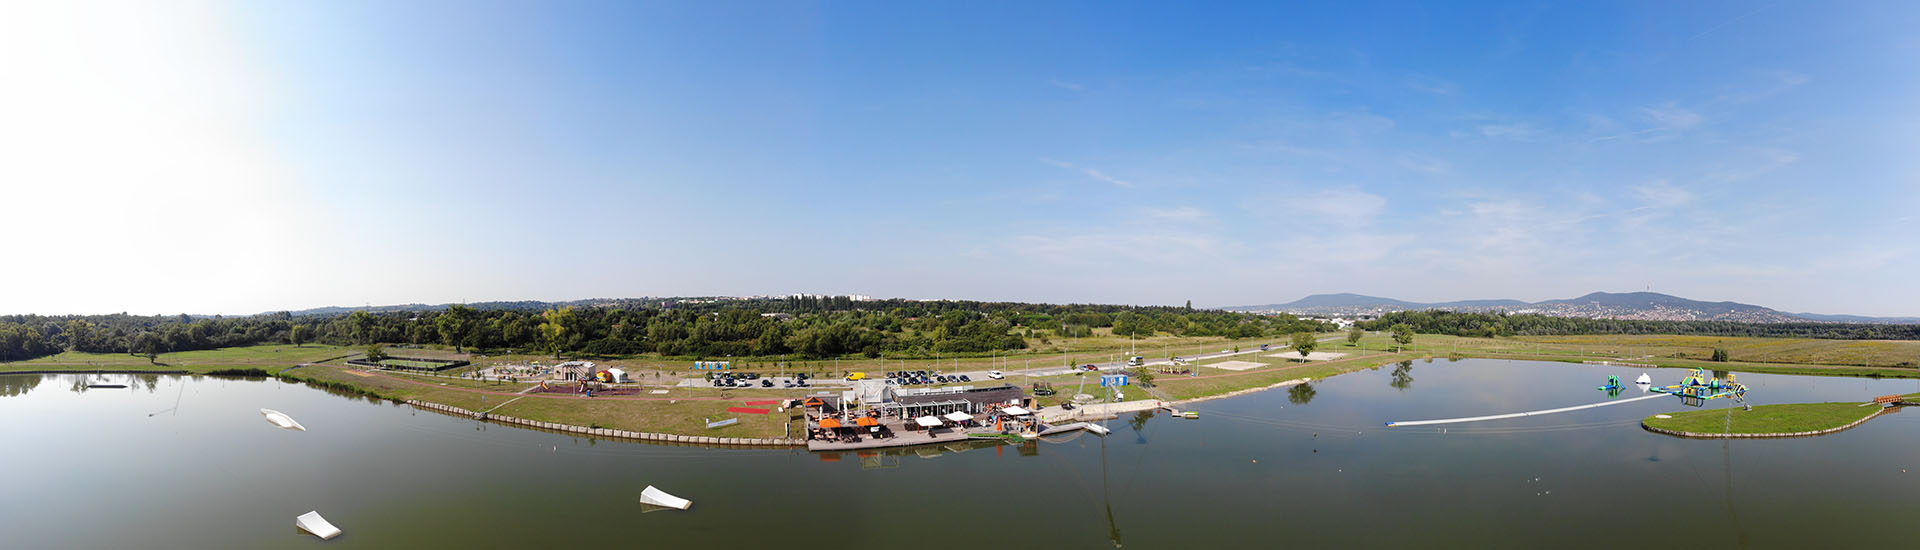 Central Wakeboard Park Pécs